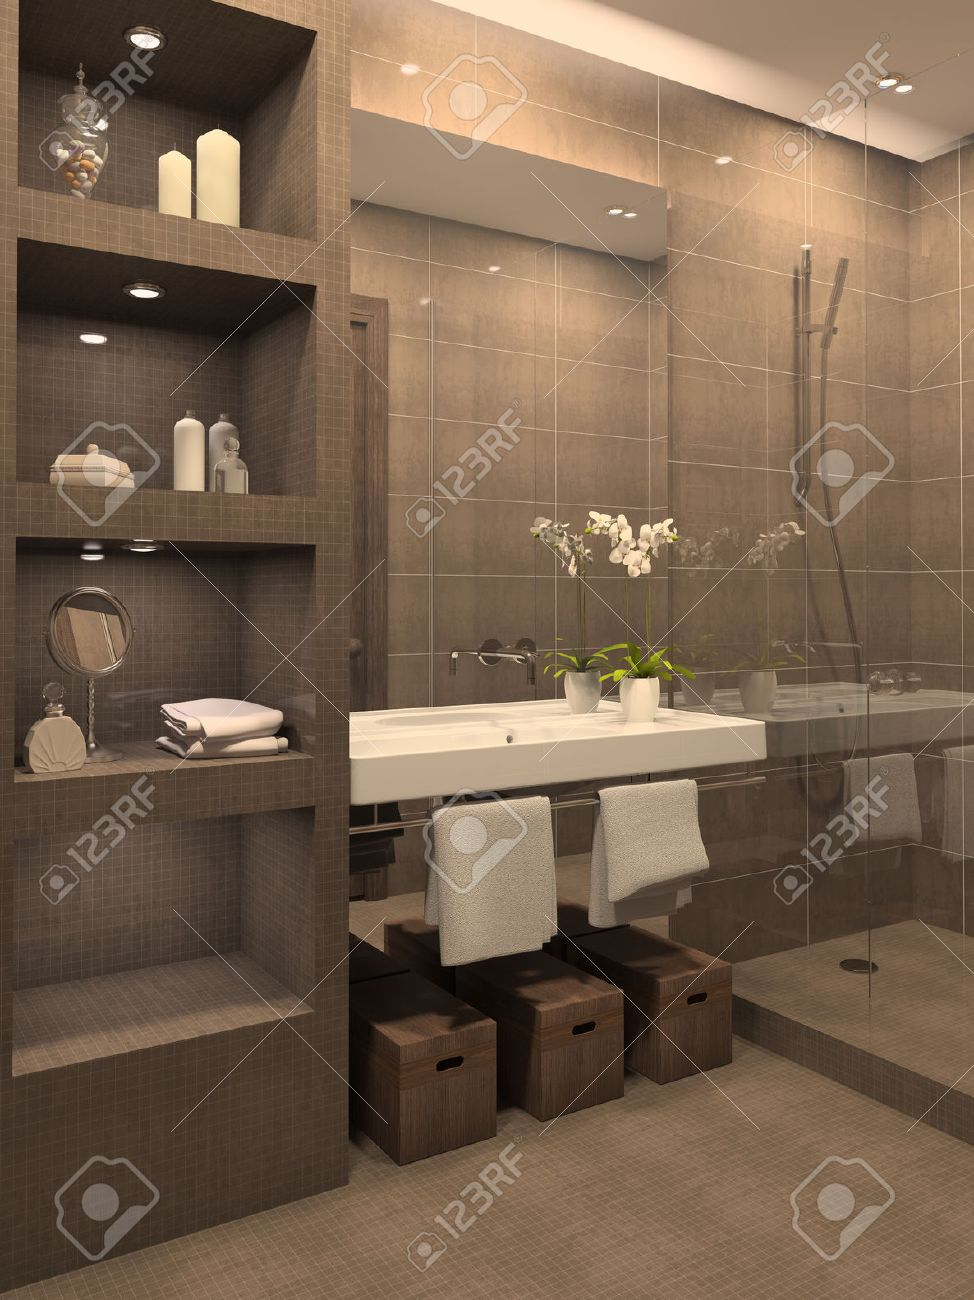 Modern Bathroom Interior. 3d Render. Stock Photo, Picture And ...